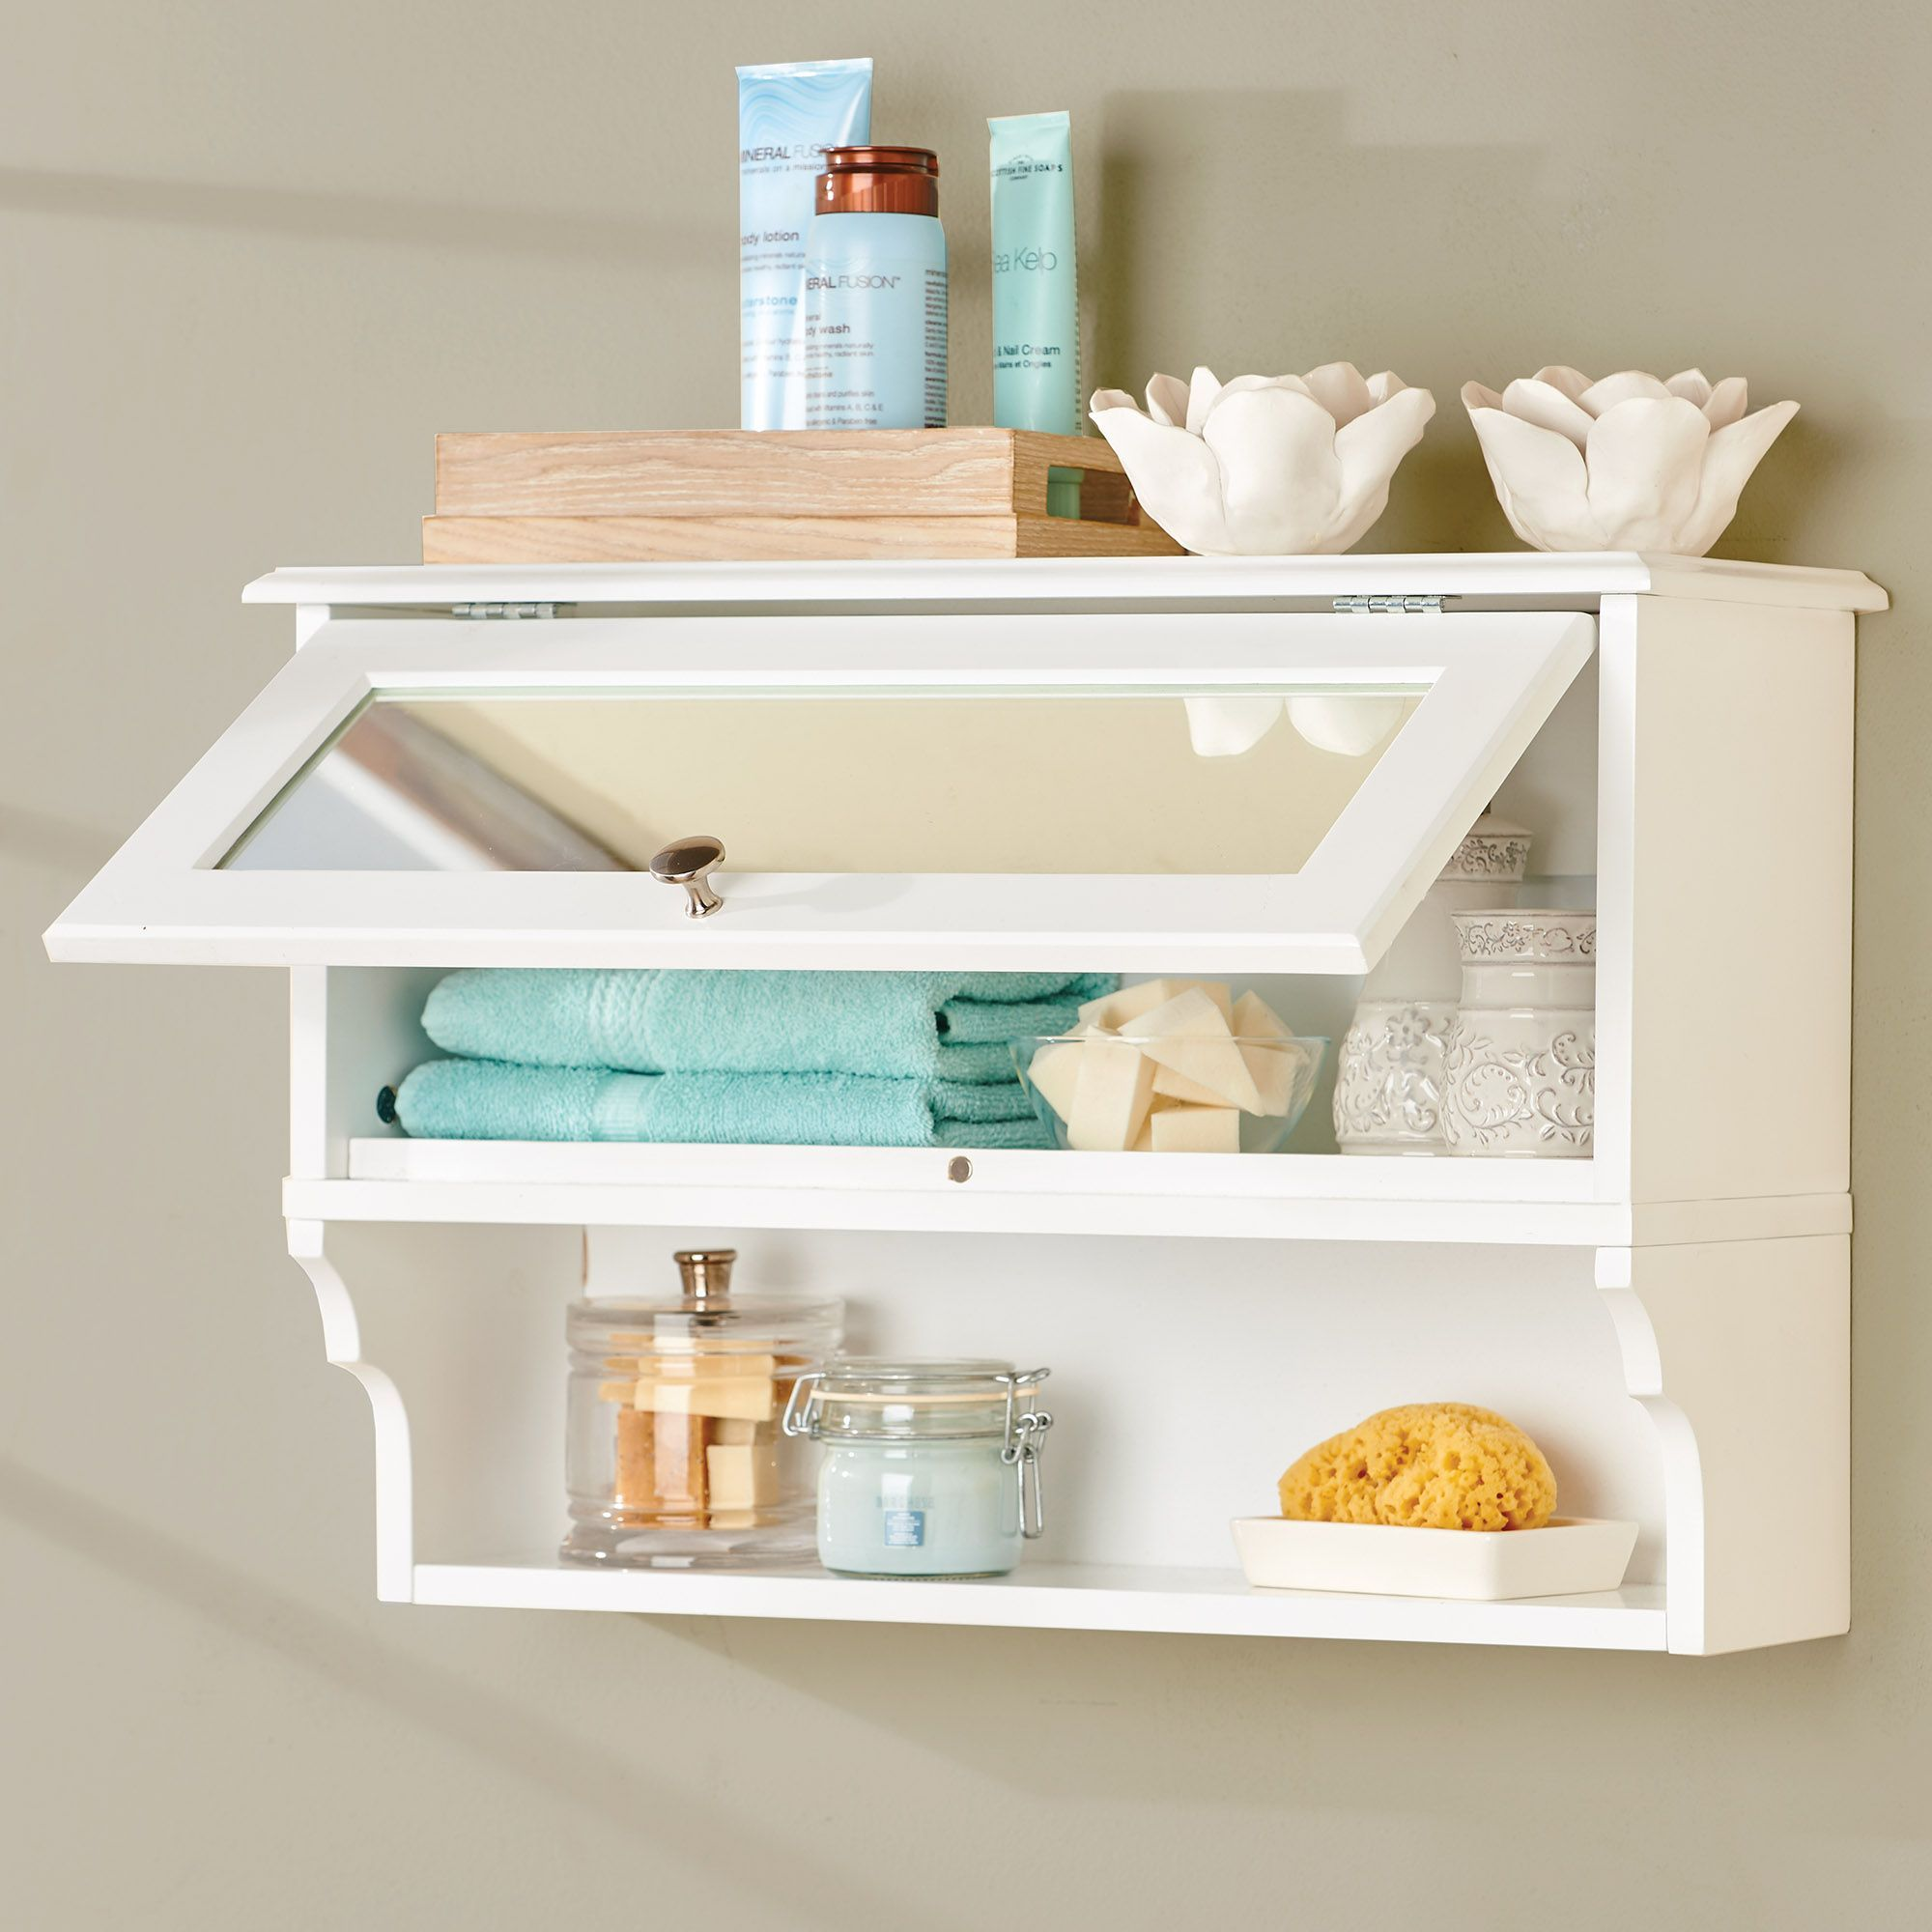 Weatherby Wall Cabinet With Mirror Bathroom Wall Storage Wall Cabinet Cupboard Storage